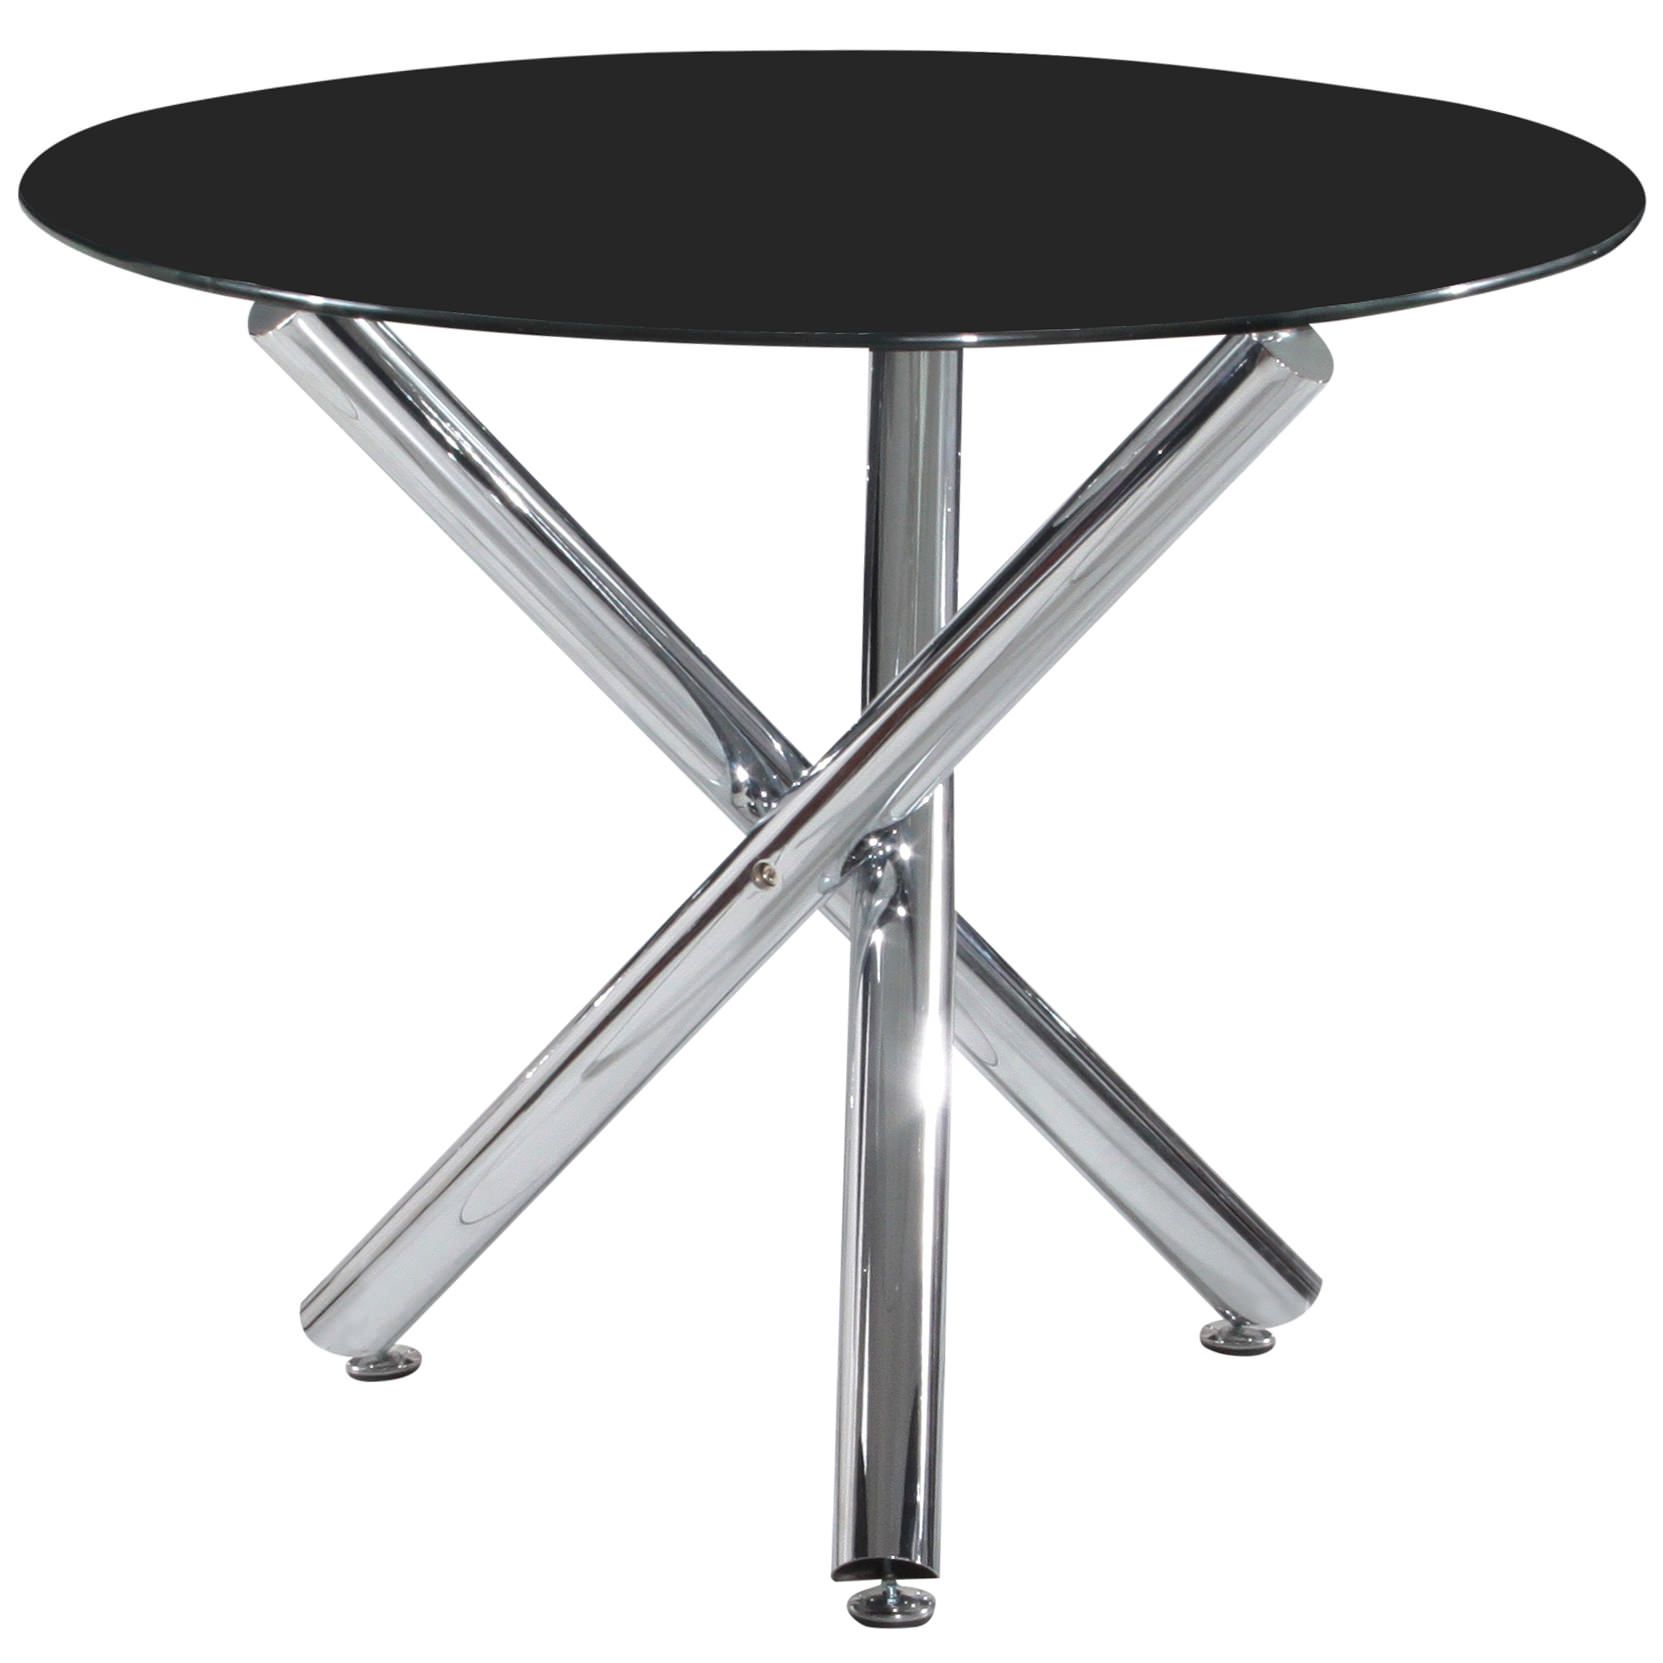 chrome glass round dining table clear black ebay. Black Bedroom Furniture Sets. Home Design Ideas